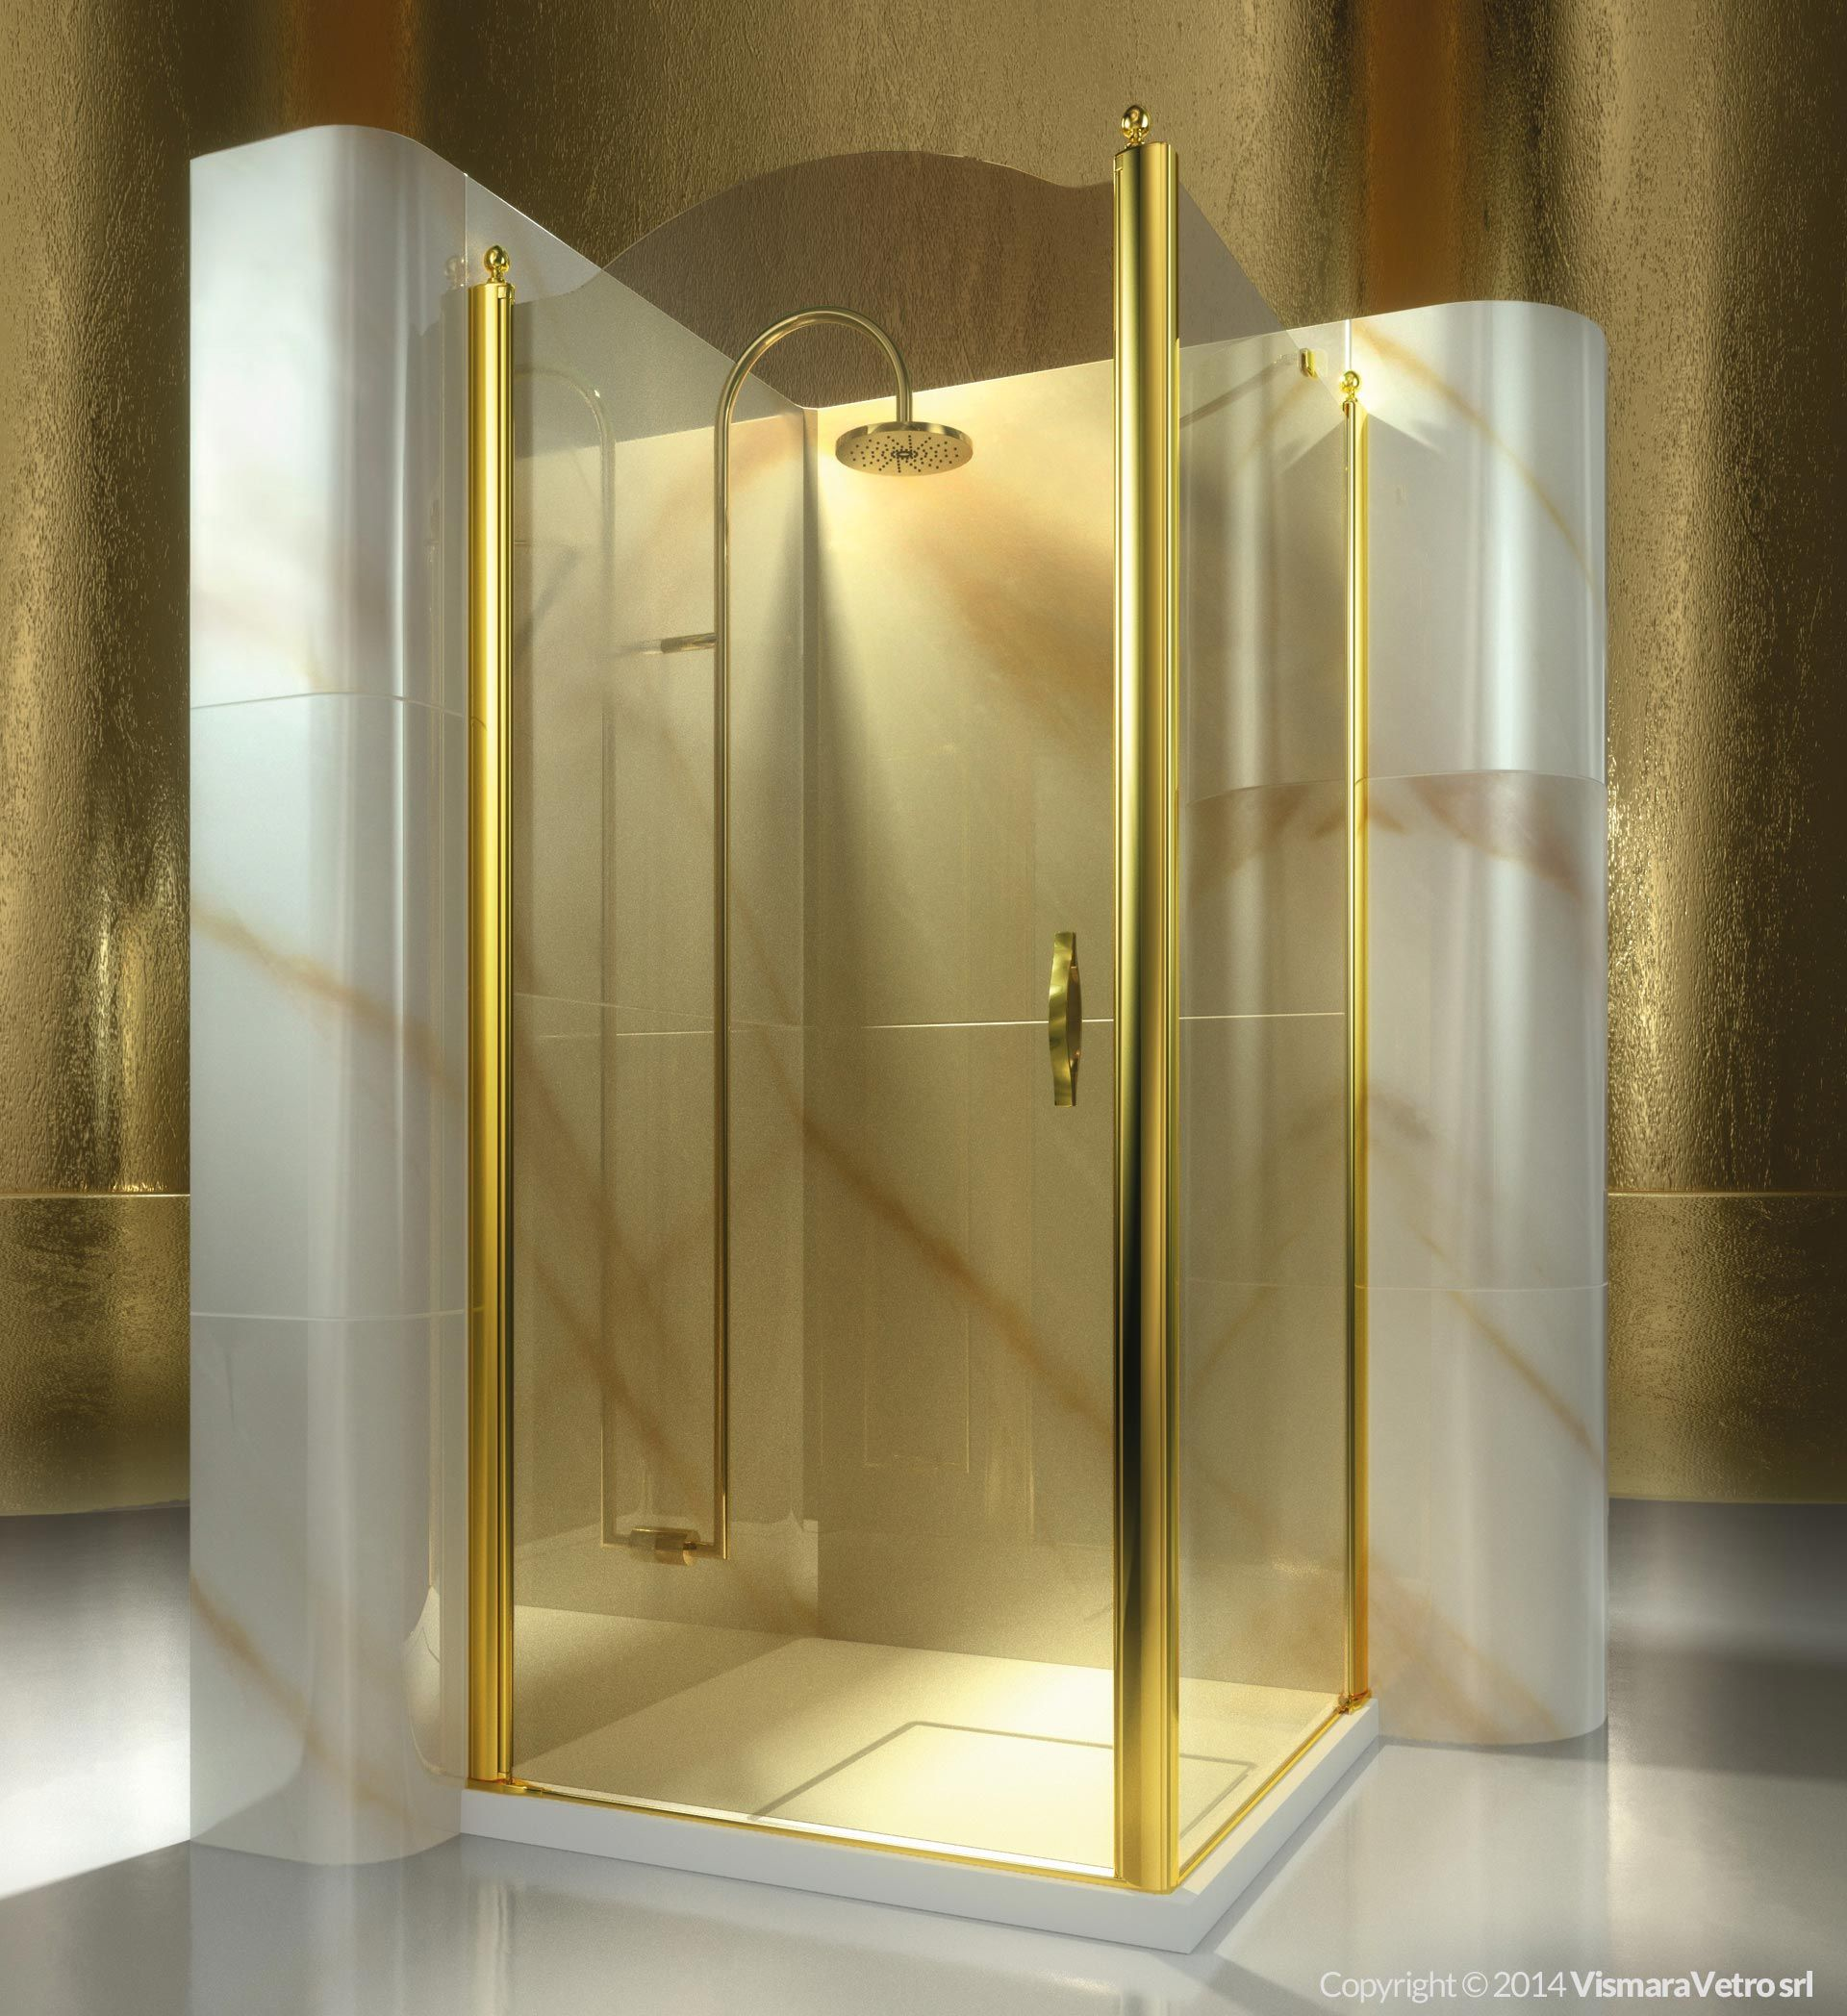 Shower enclosure for corner shower trays made by a pivot door and ...